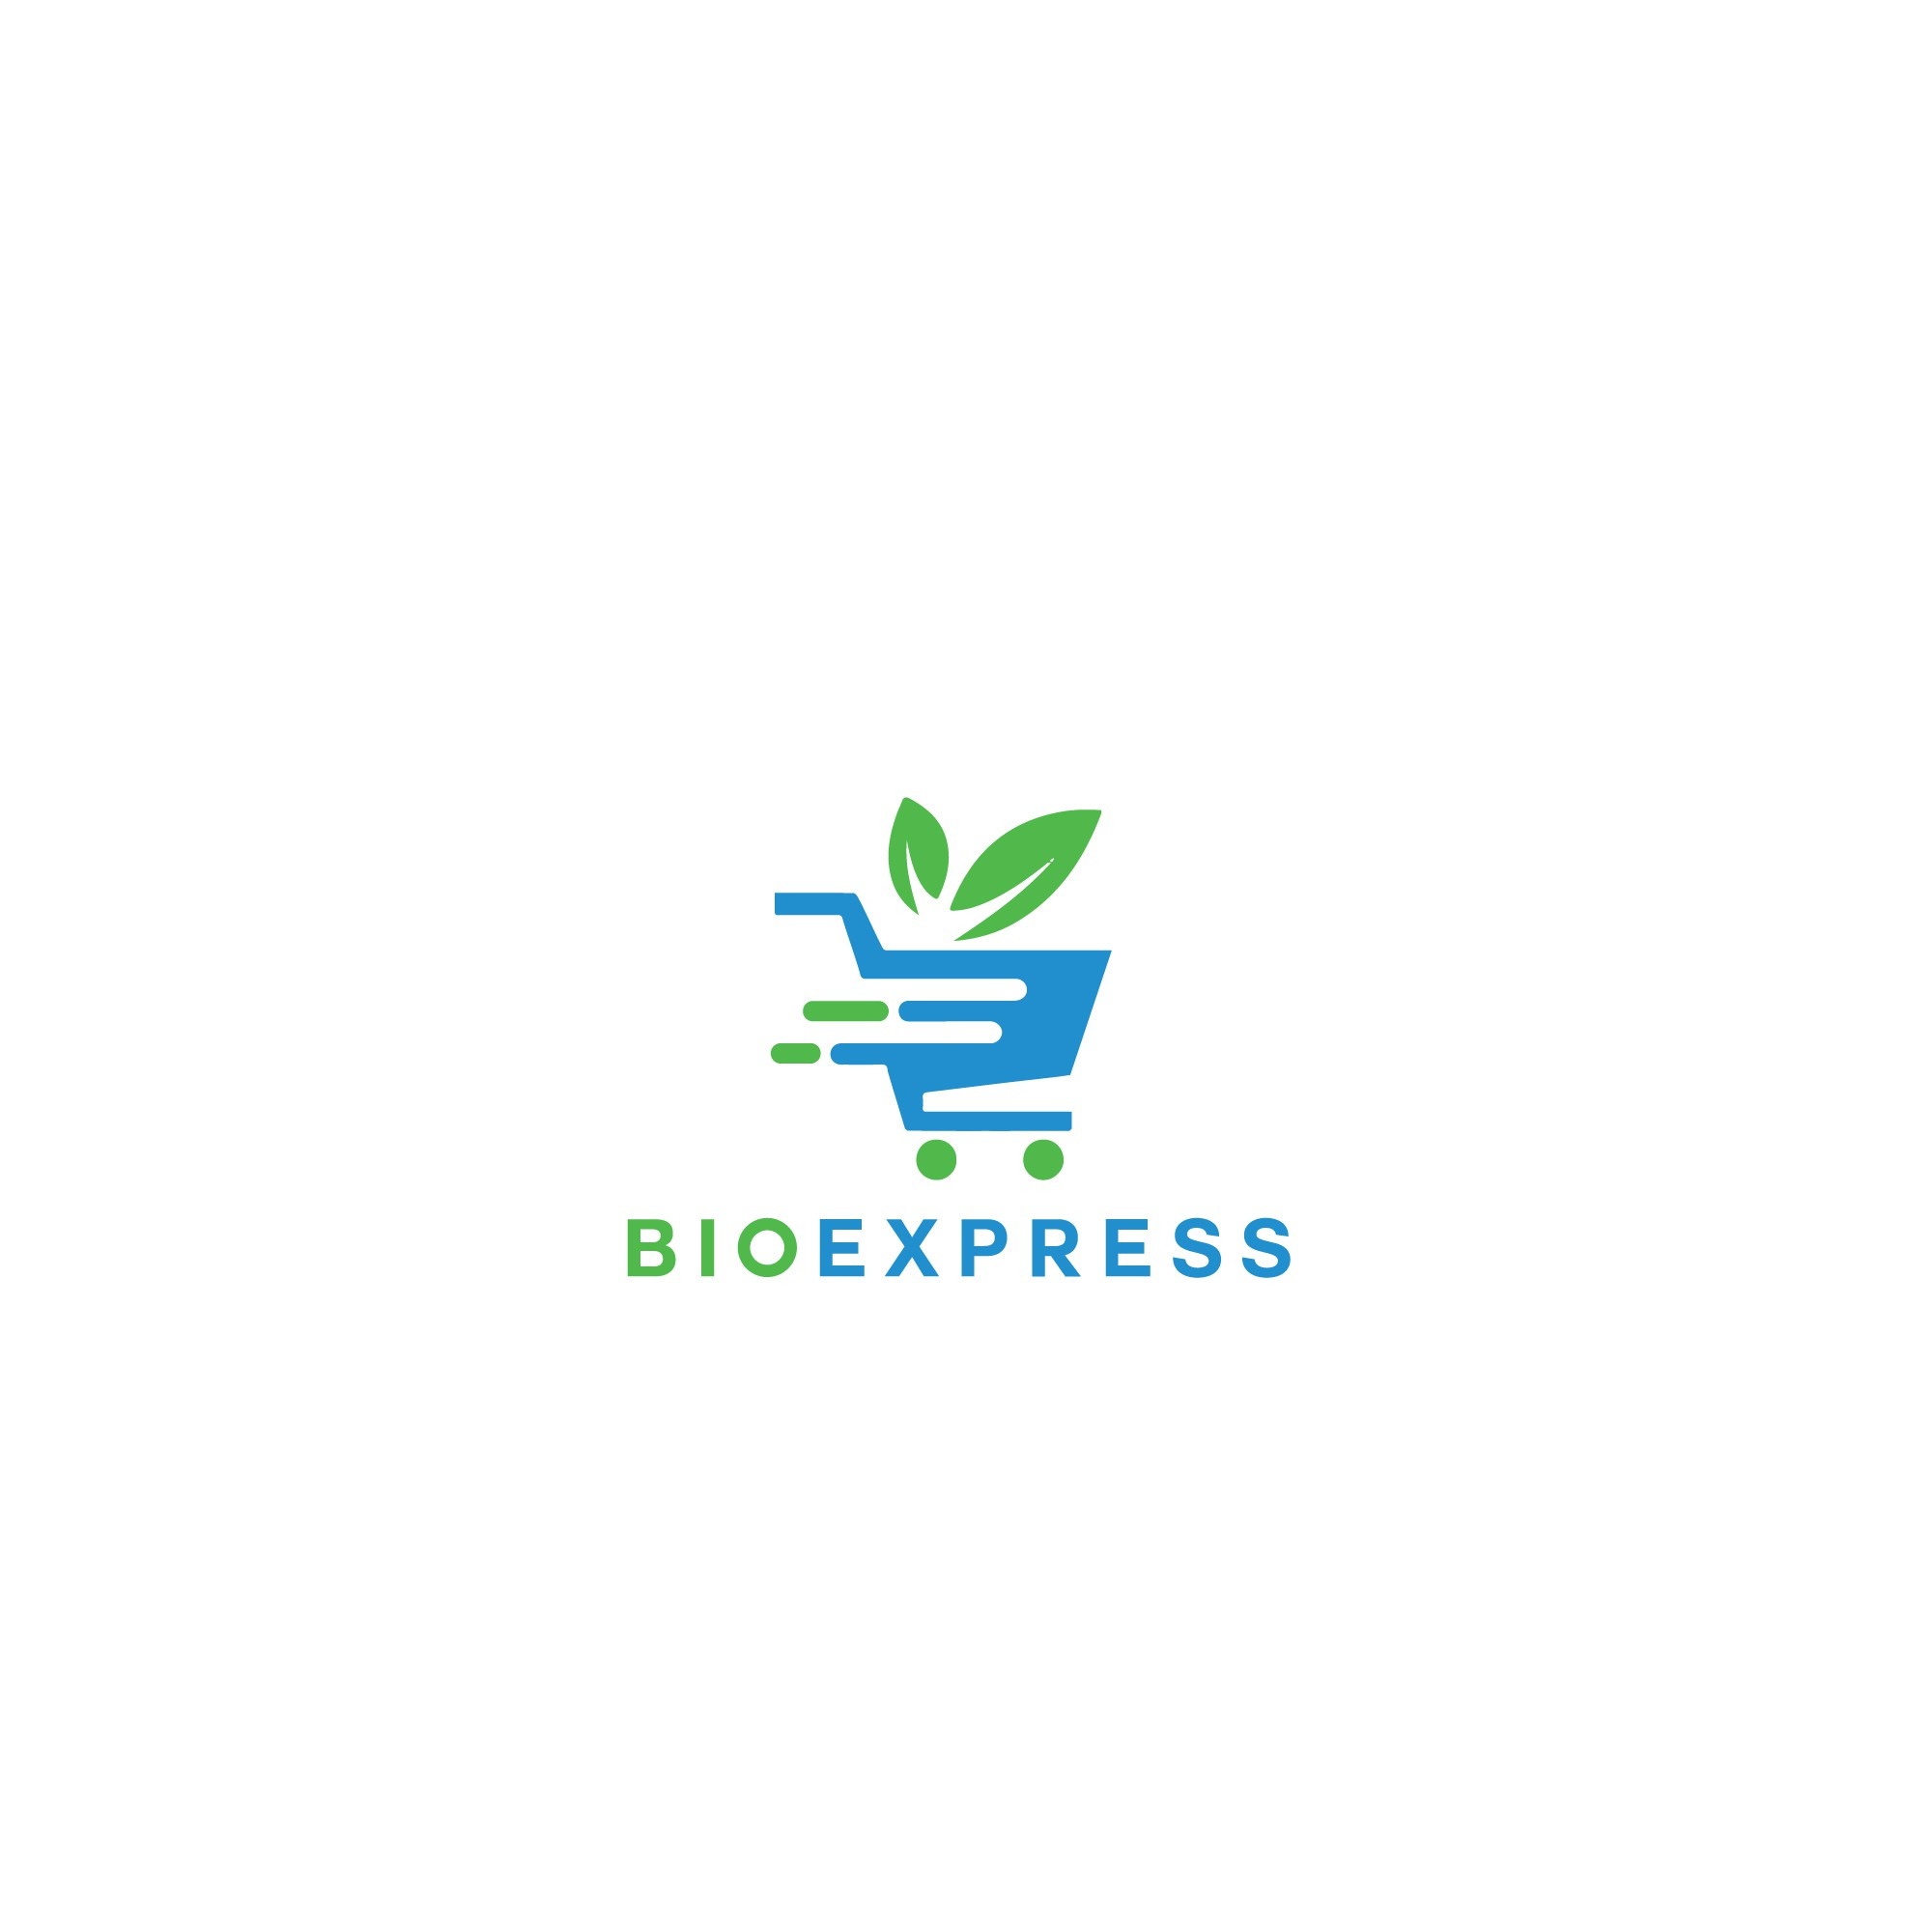 Organic supplements and vitamins web store looking for a great logo!